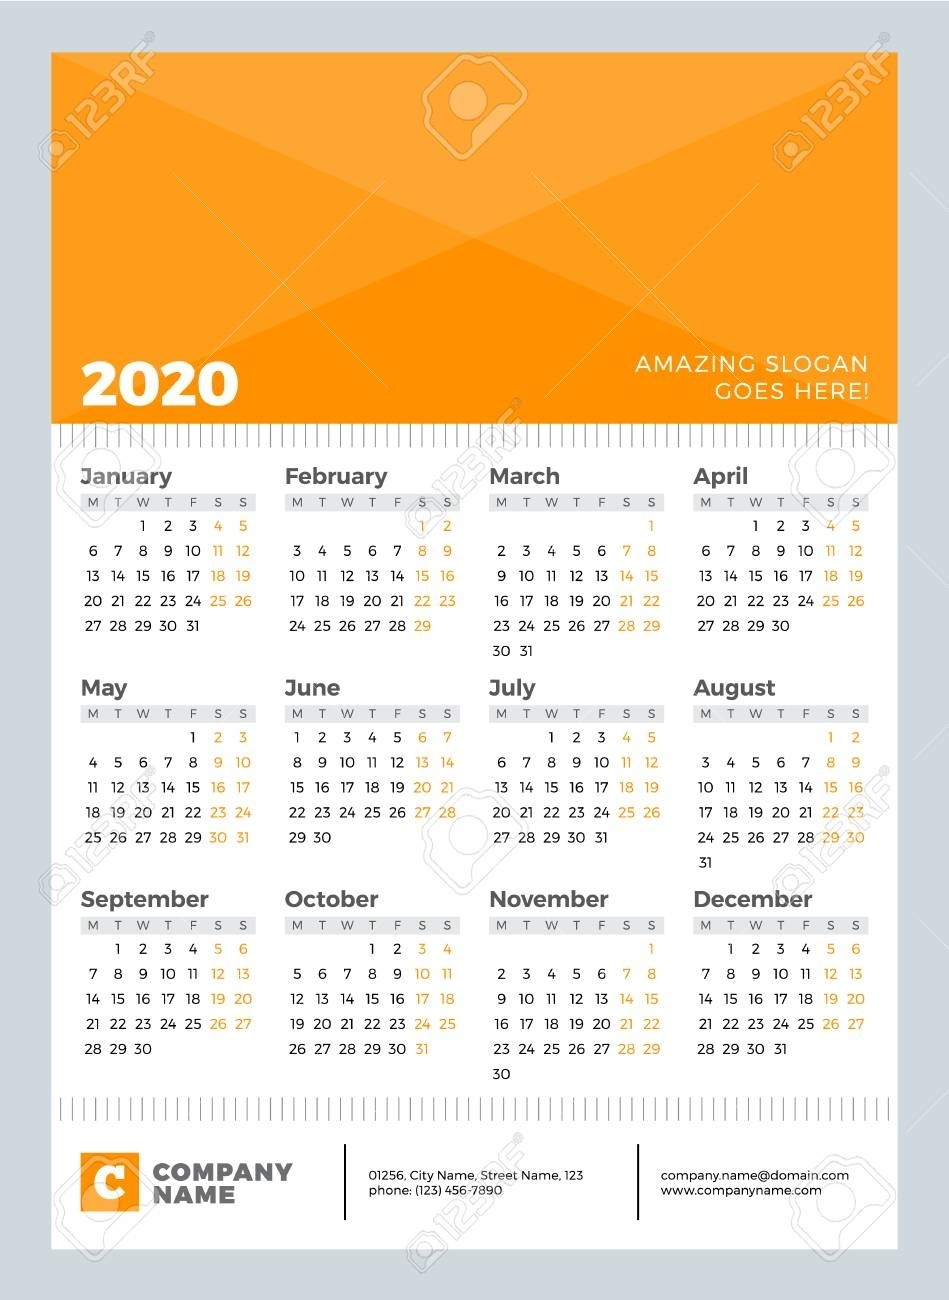 Calendar For 2020 Year. Week Starts On Monday. Vector Design..